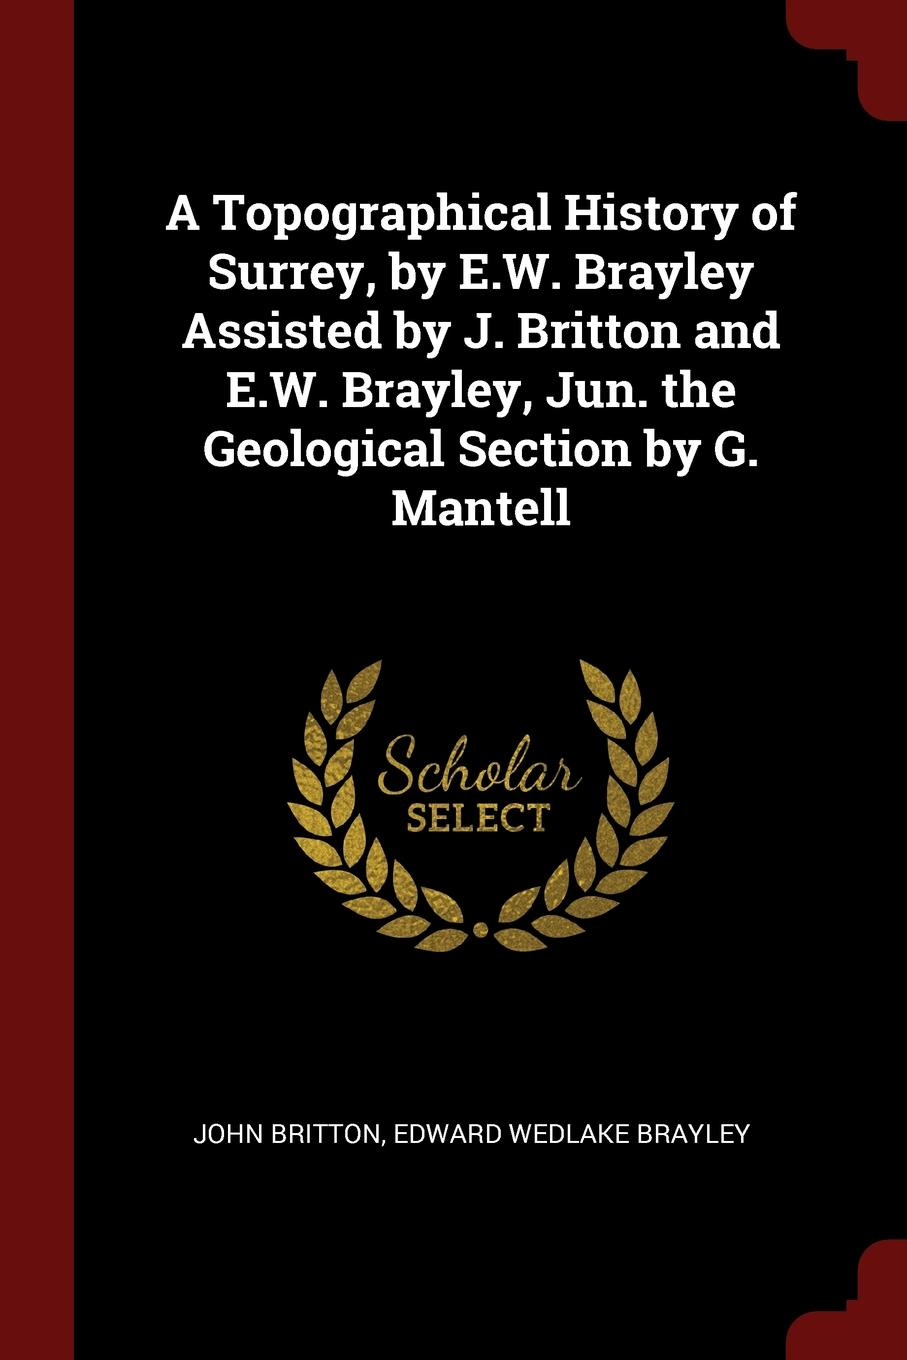 A Topographical History of Surrey, by E.W. Brayley Assisted by J. Britton and E.W. Brayley, Jun. the Geological Section by G. Mantell. John Britton, Edward Wedlake Brayley